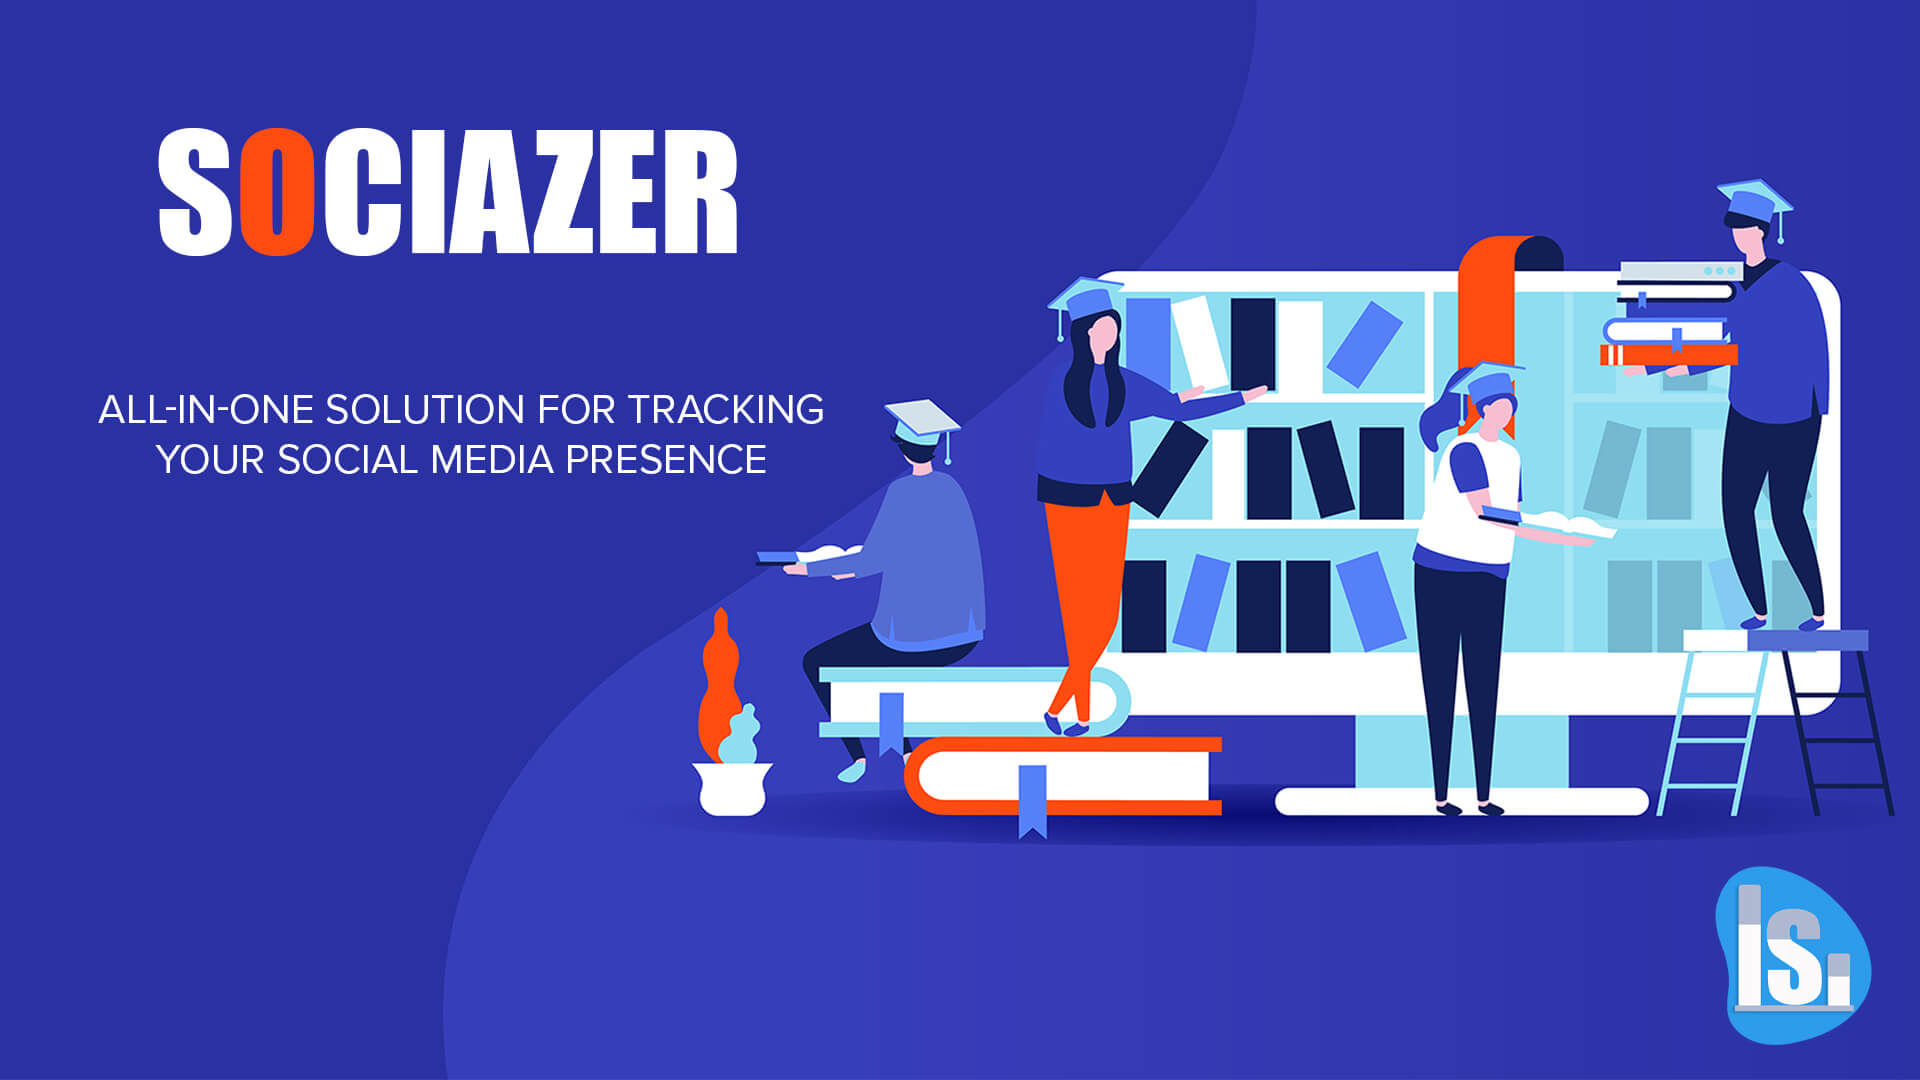 sociazer all-in-one social tracking solution